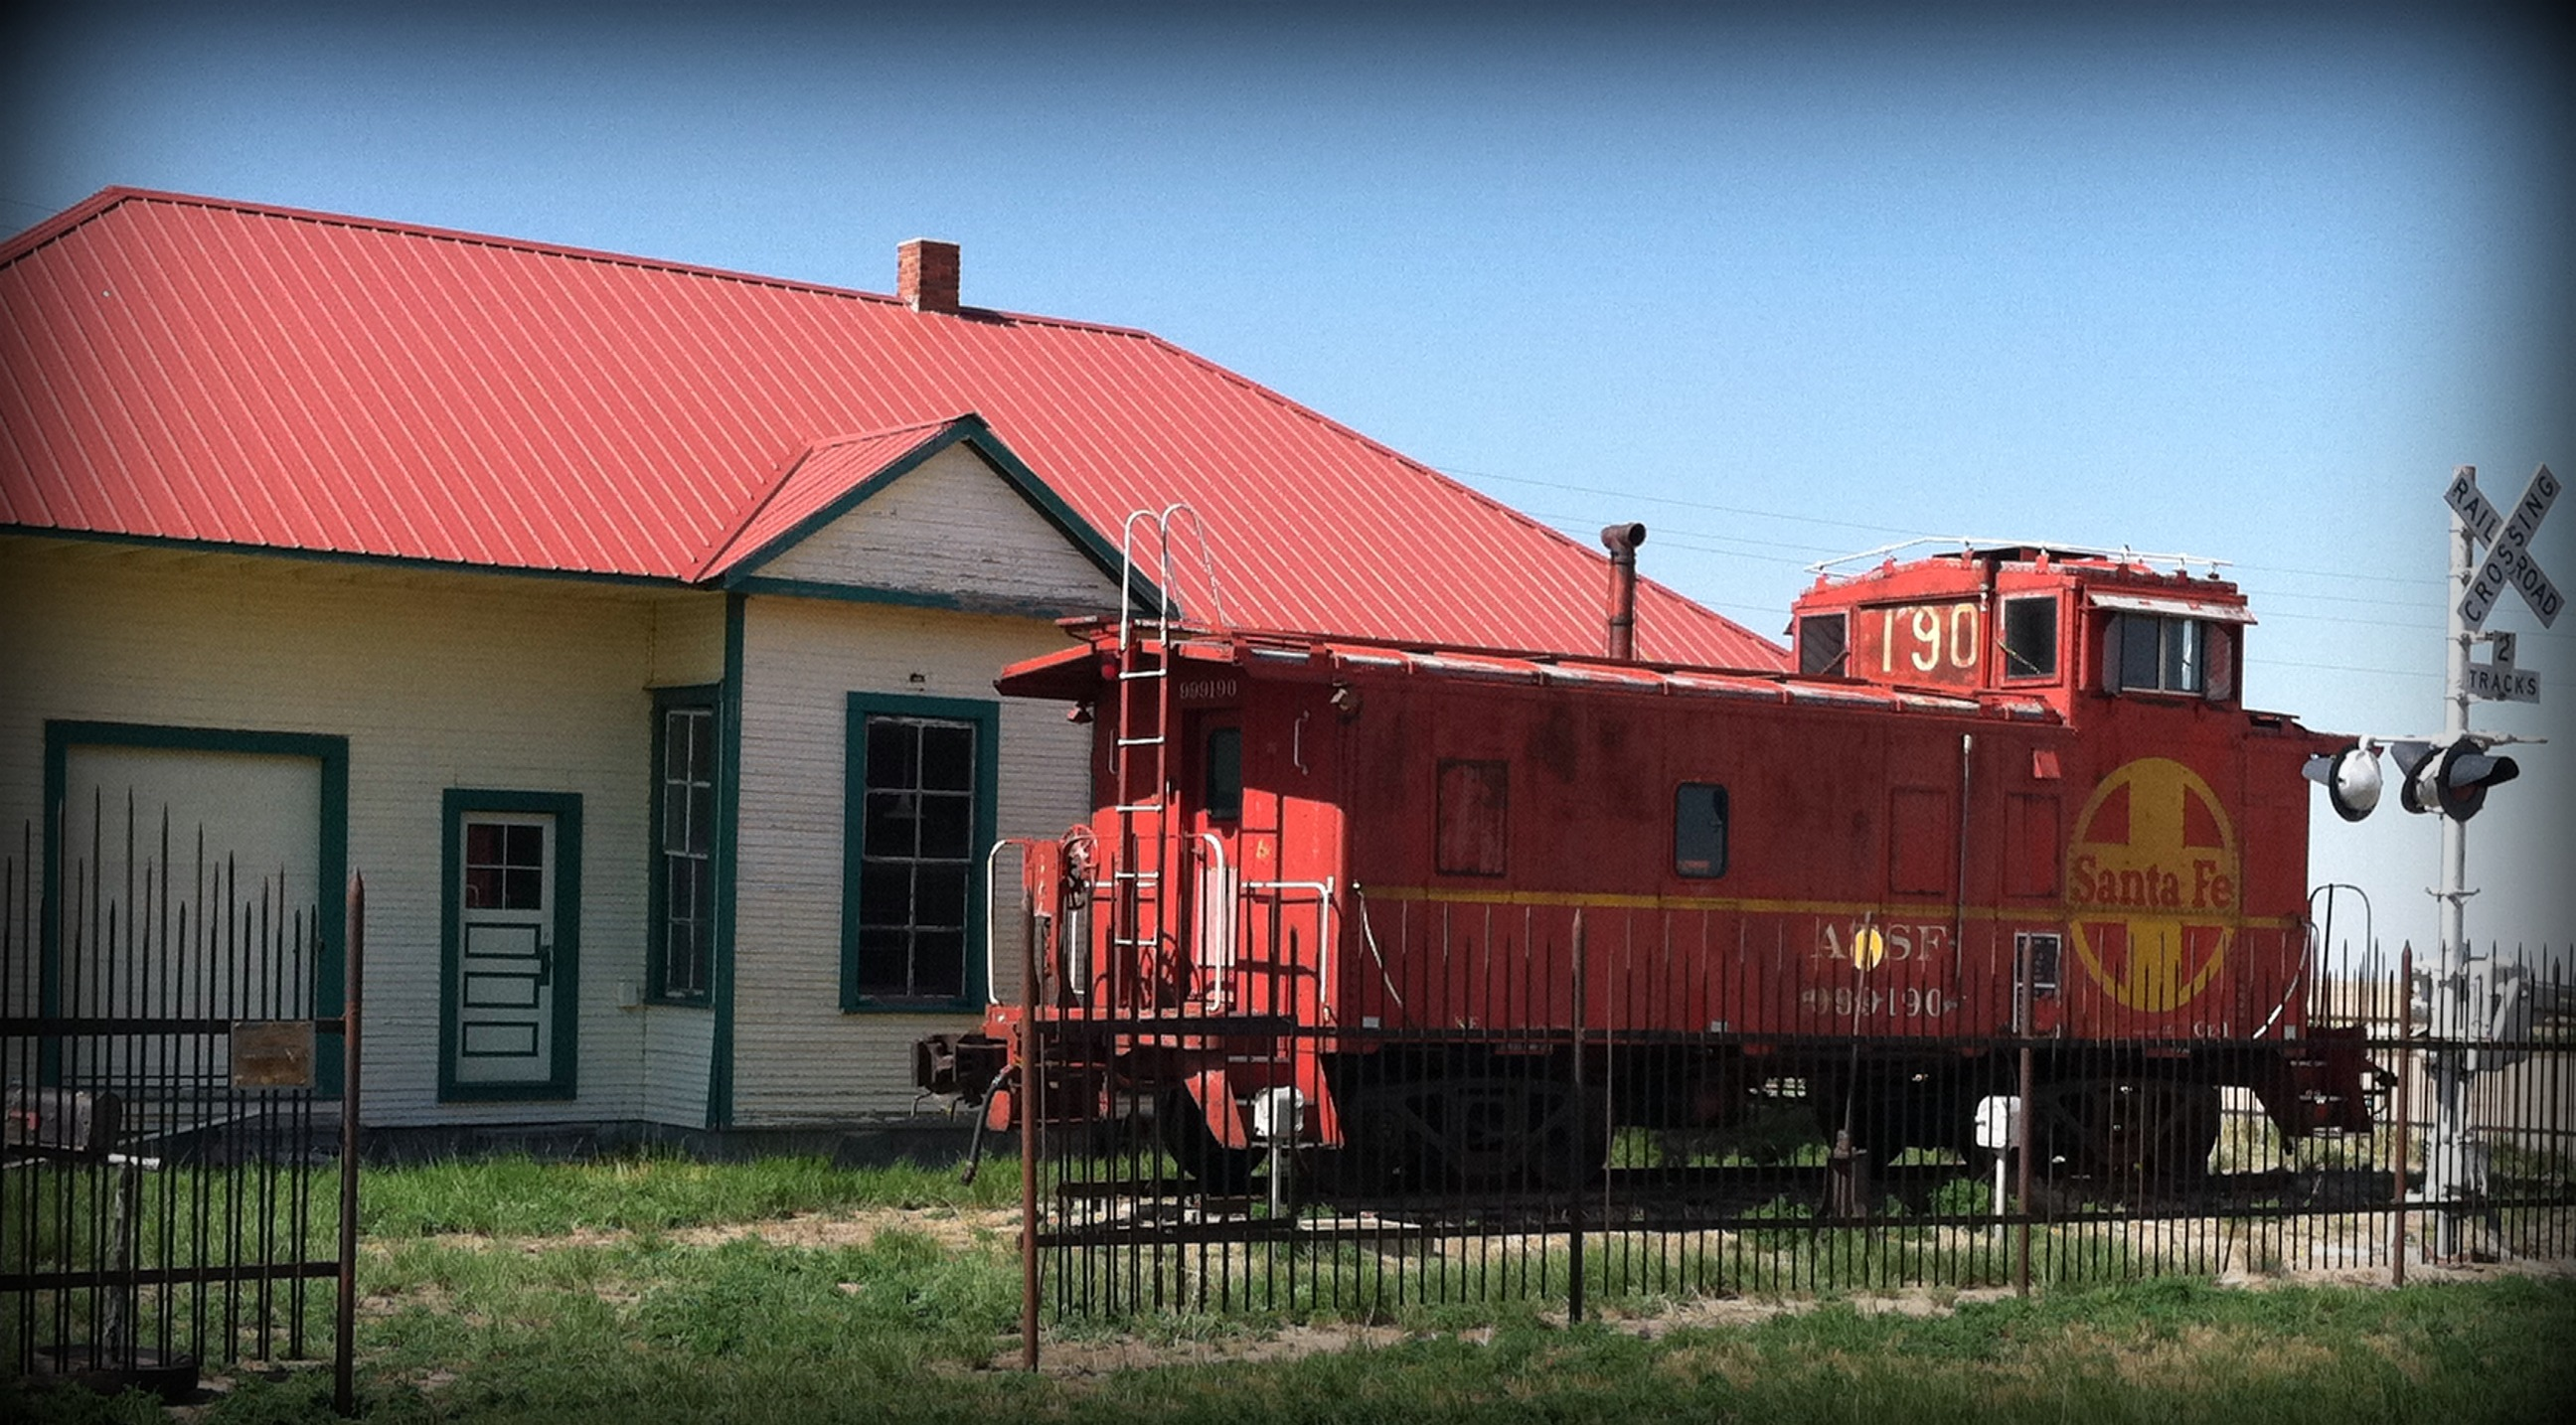 Selkirk Depot and Caboose